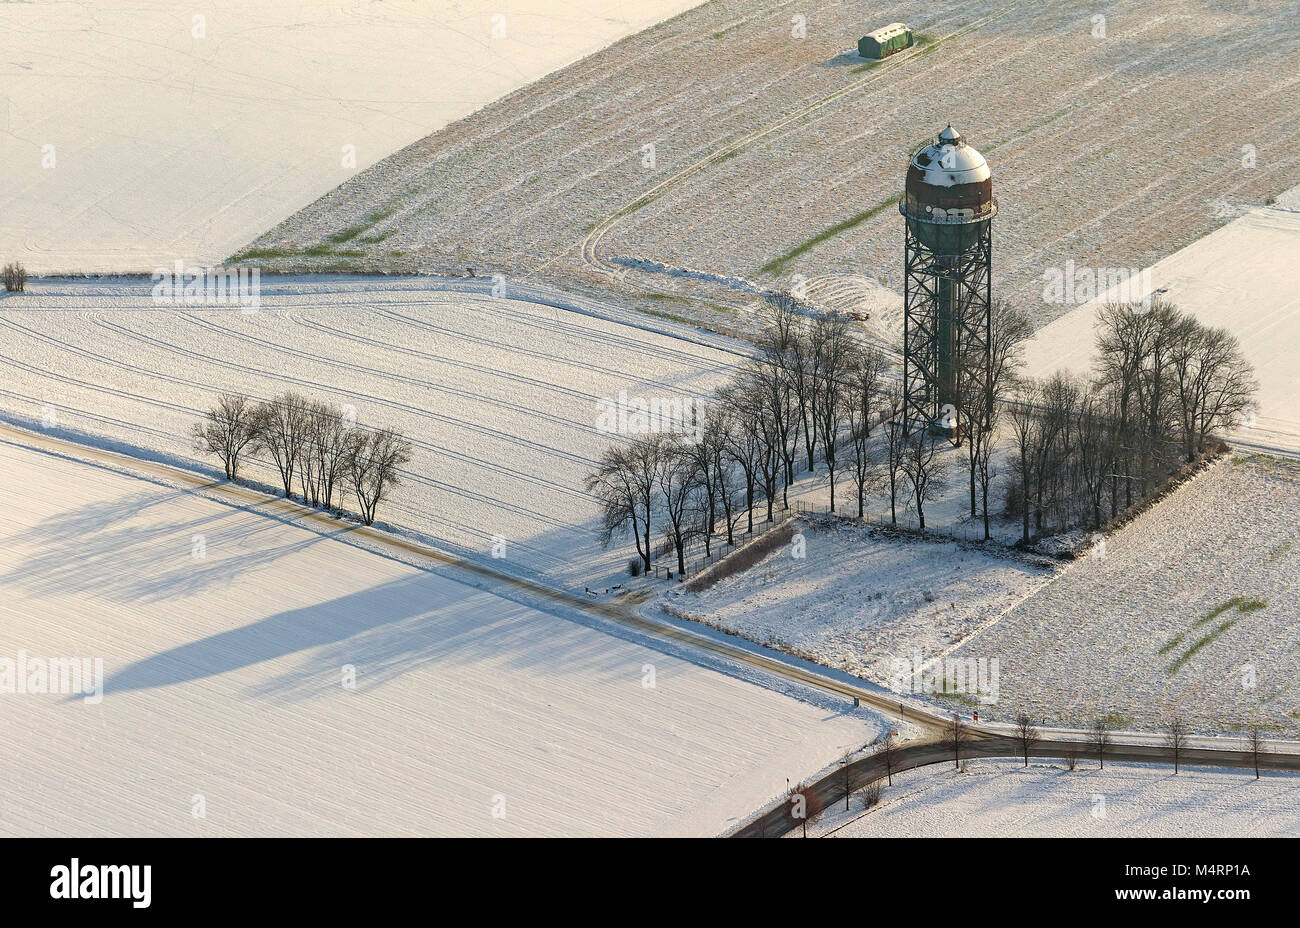 Aerial view, historic water tower Lanstroper egg in the snow, monument, Dortmund, Ruhr area, North Rhine-Westphalia, - Stock Image